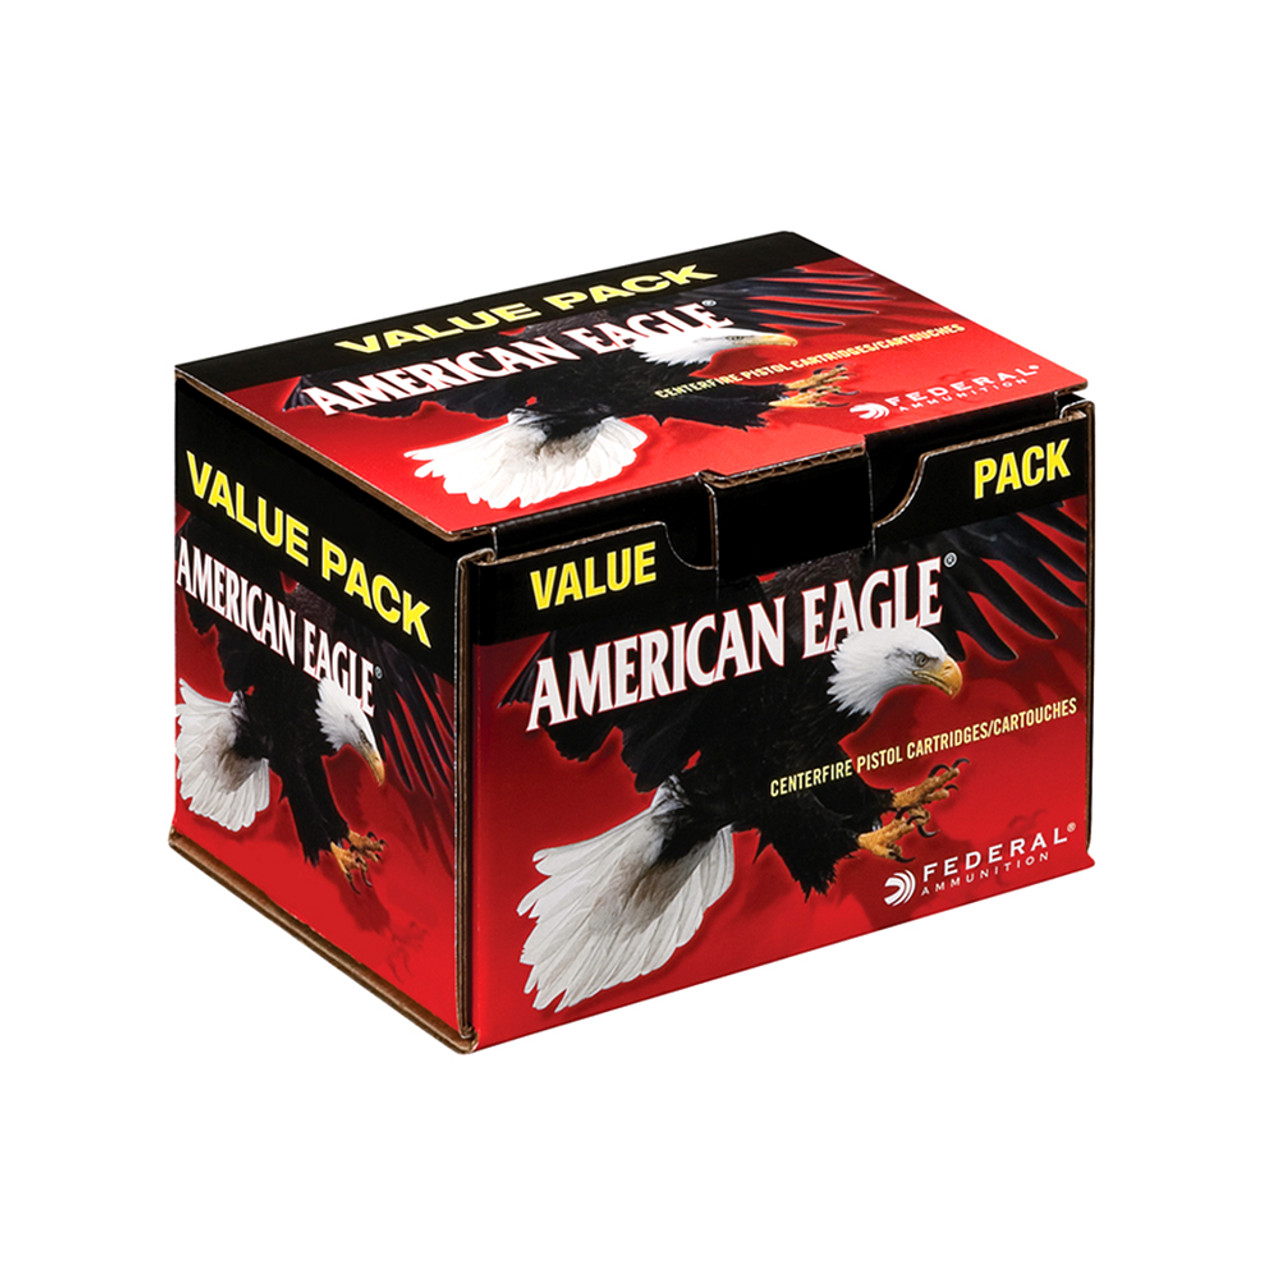 FEDERAL American Eagle 9mm 115 Grain FMJ Ammo, 100 Round Box (AE9DP100)